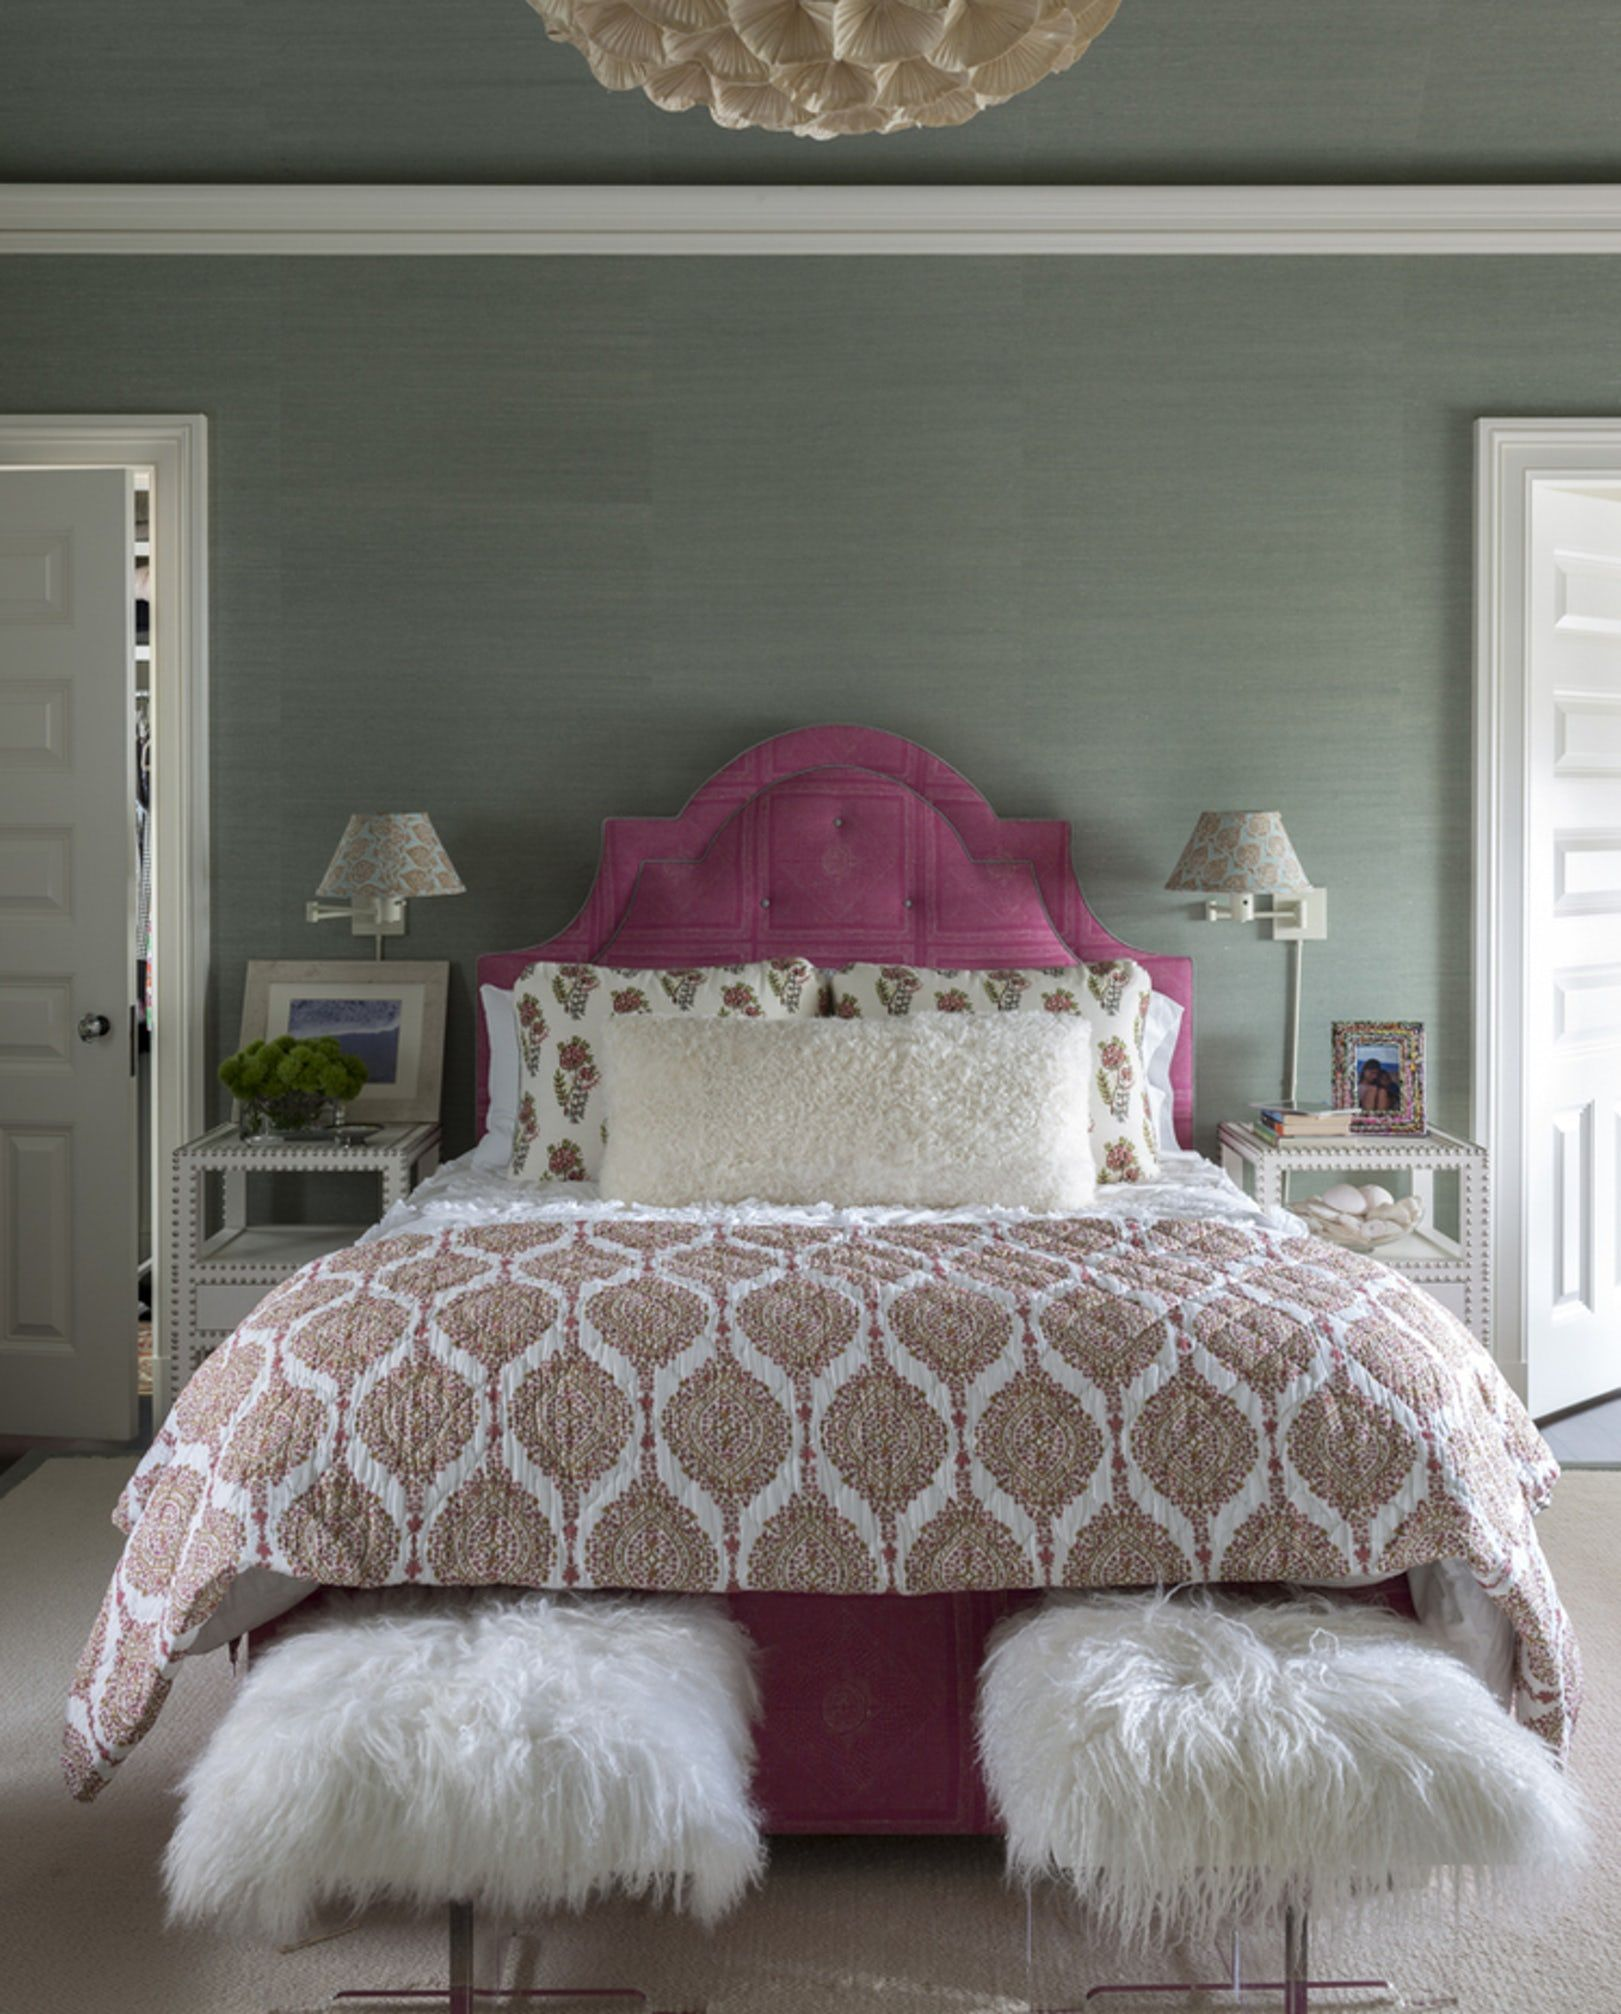 Ordinaire Girls Bedrooms. Design By Lee Ann Thornton Interiors